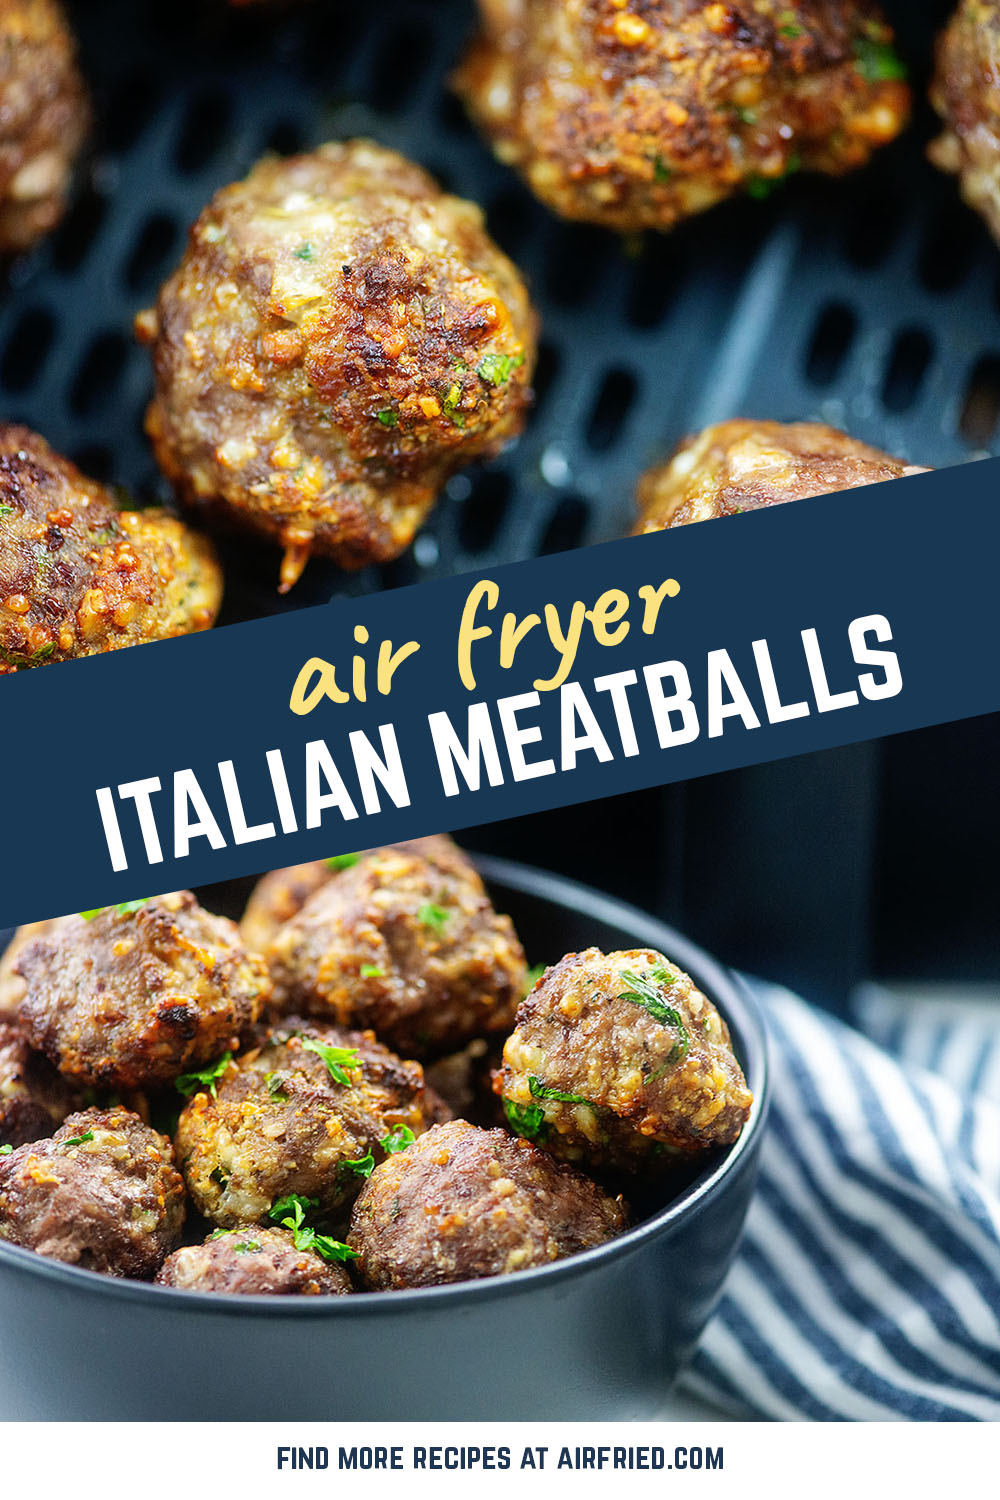 These meatballs take 15 minutes to make and make for an excellent game day appetizer!  #airfryer #italianmeatballs #recipes